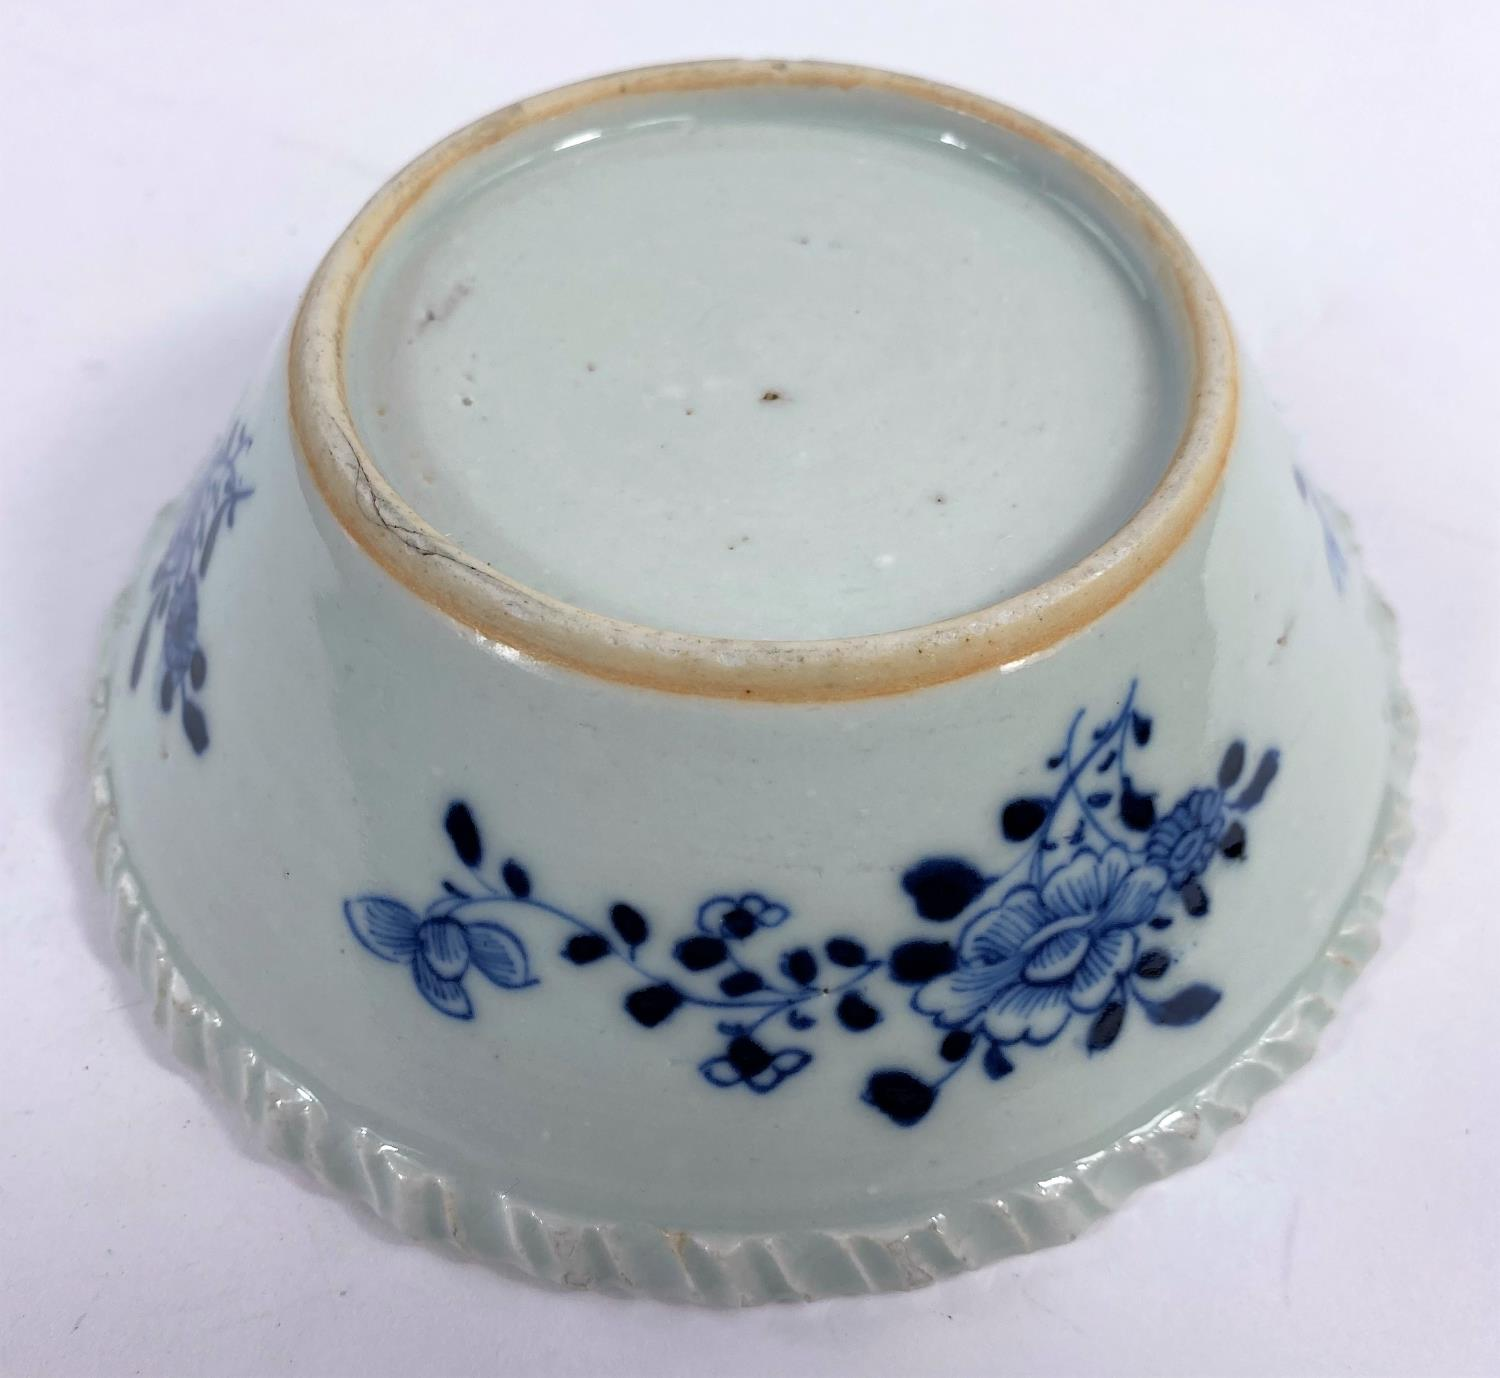 An 18th century Chinese blue and white porcelain bowl with pie crust rim decorated with antiques and - Image 4 of 5